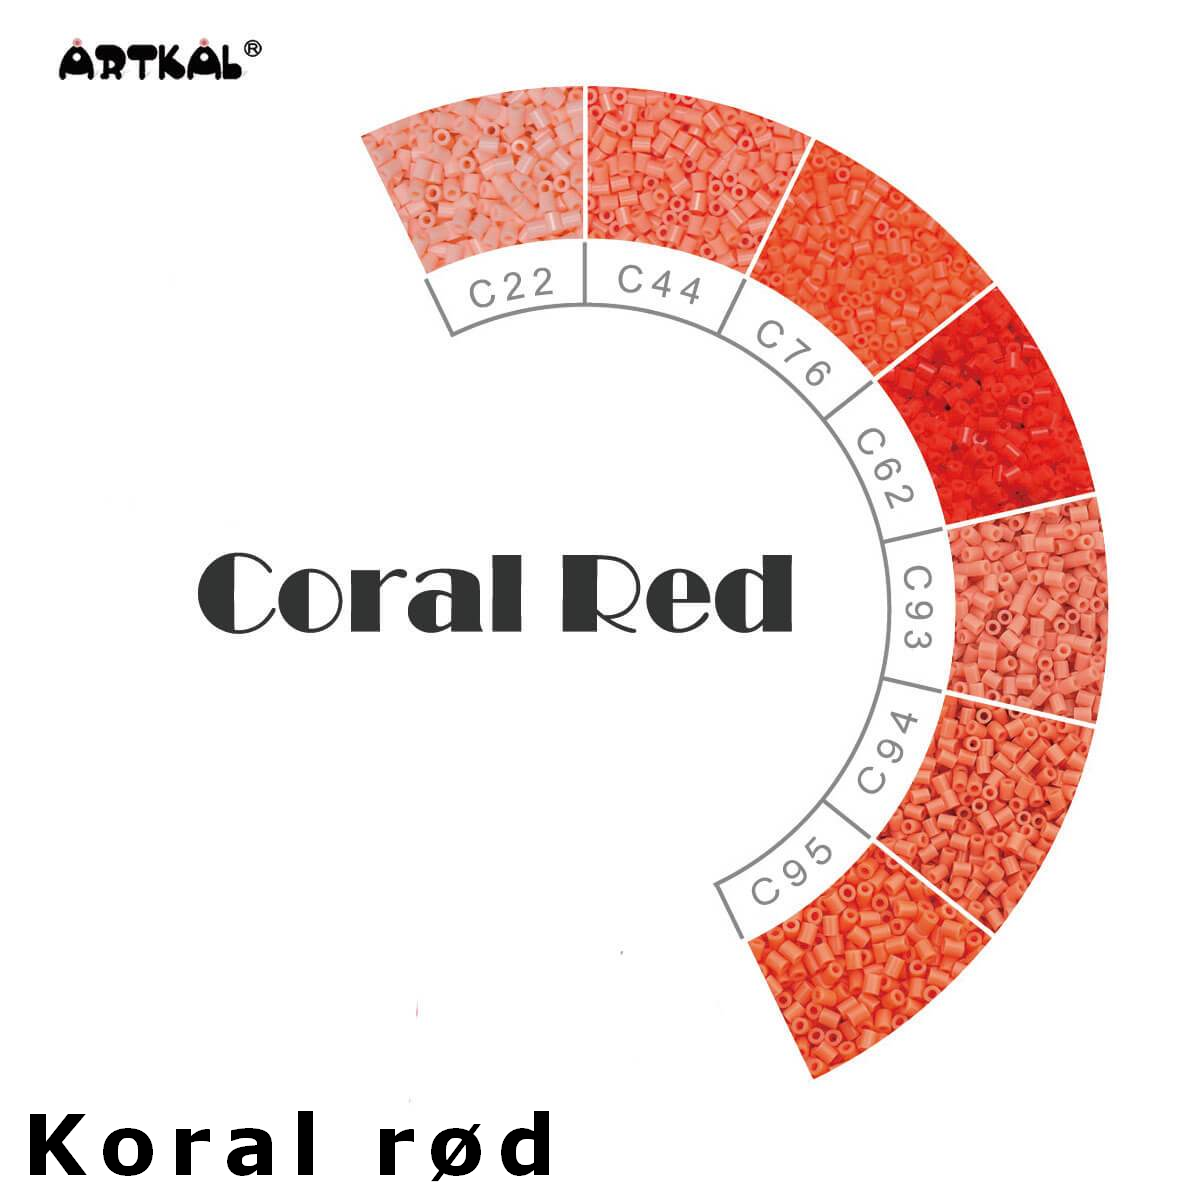 Artkal Wheel Coral-Red